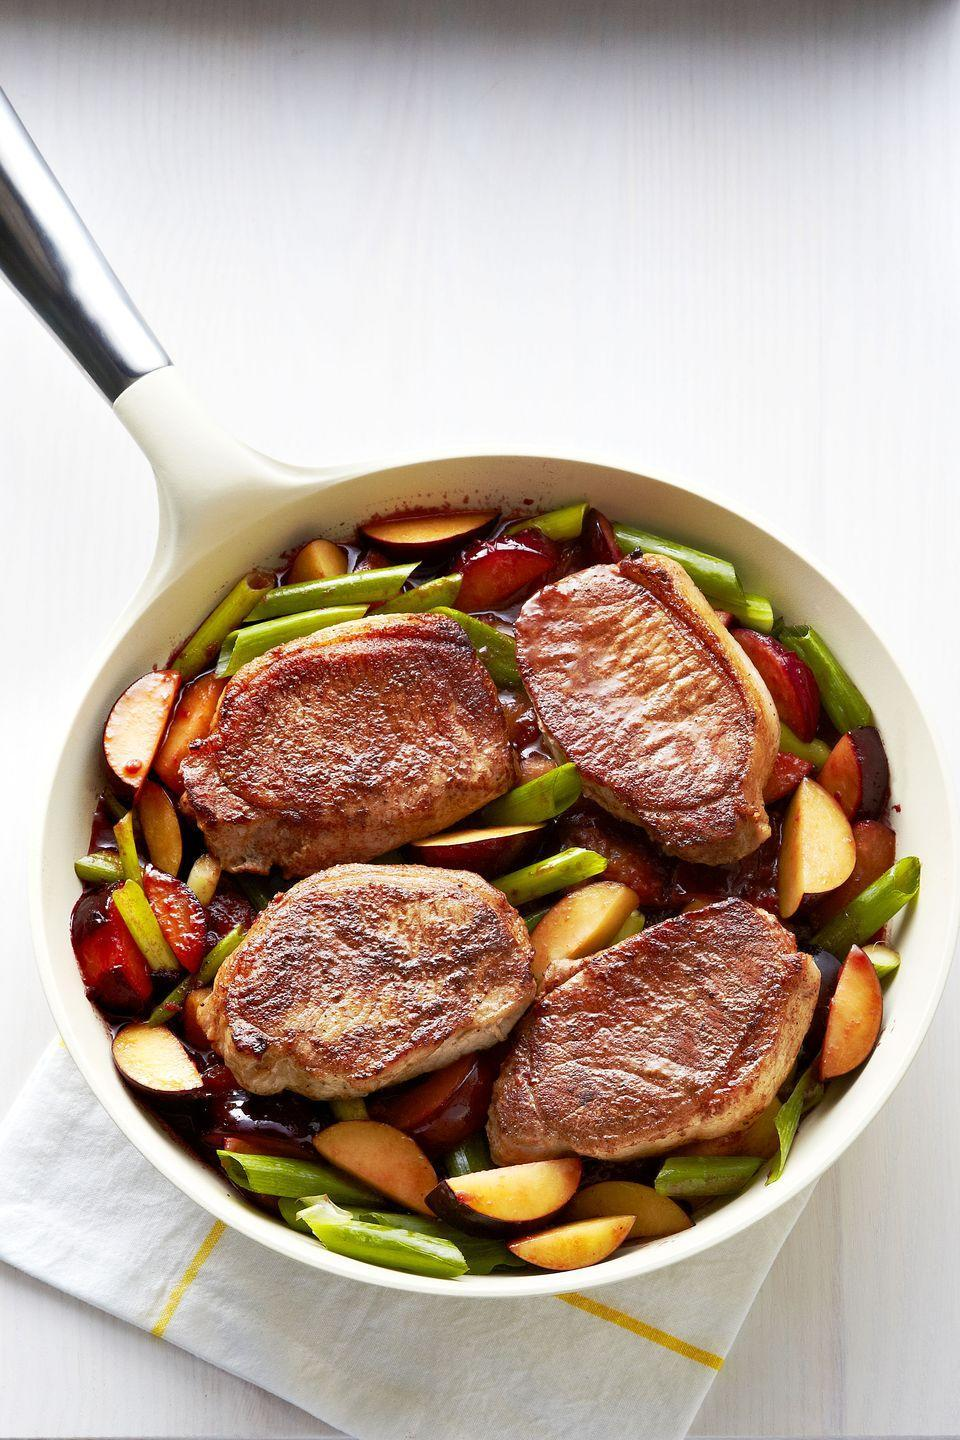 "<p>Plums prove their versatility in this crazy-delicious skillet dish. Sure, the fruit tastes great in <a href=""https://www.goodhousekeeping.com/food-recipes/a5256/summer-plum-tart-1652/"" rel=""nofollow noopener"" target=""_blank"" data-ylk=""slk:tarts"" class=""link rapid-noclick-resp"">tarts</a>, pies and other sweets. But here, they infuse incredible flavor into plain, boneless pork chops.</p><p><a href=""https://www.goodhousekeeping.com/food-recipes/a14958/five-spice-pork-plums-recipe-ghk1014/"" rel=""nofollow noopener"" target=""_blank"" data-ylk=""slk:Get the recipe for Five Spice Pork with Plums »"" class=""link rapid-noclick-resp""><em>Get the recipe for Five Spice Pork with Plums »</em></a></p>"